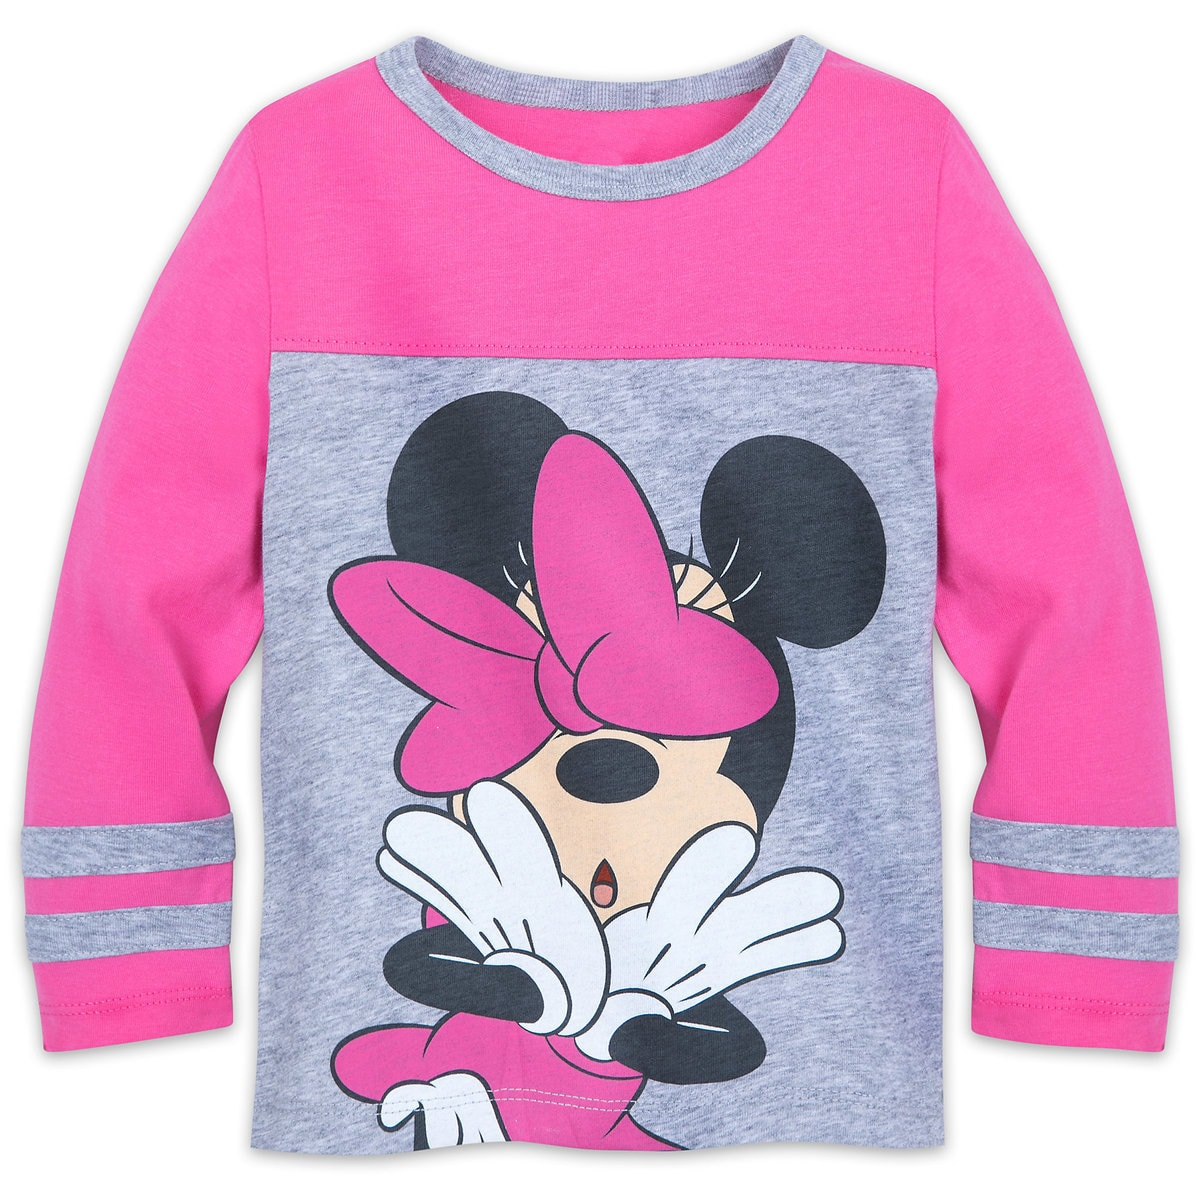 527afe1c Product Image of Minnie Mouse Long Sleeve Shirt for Girls # 1